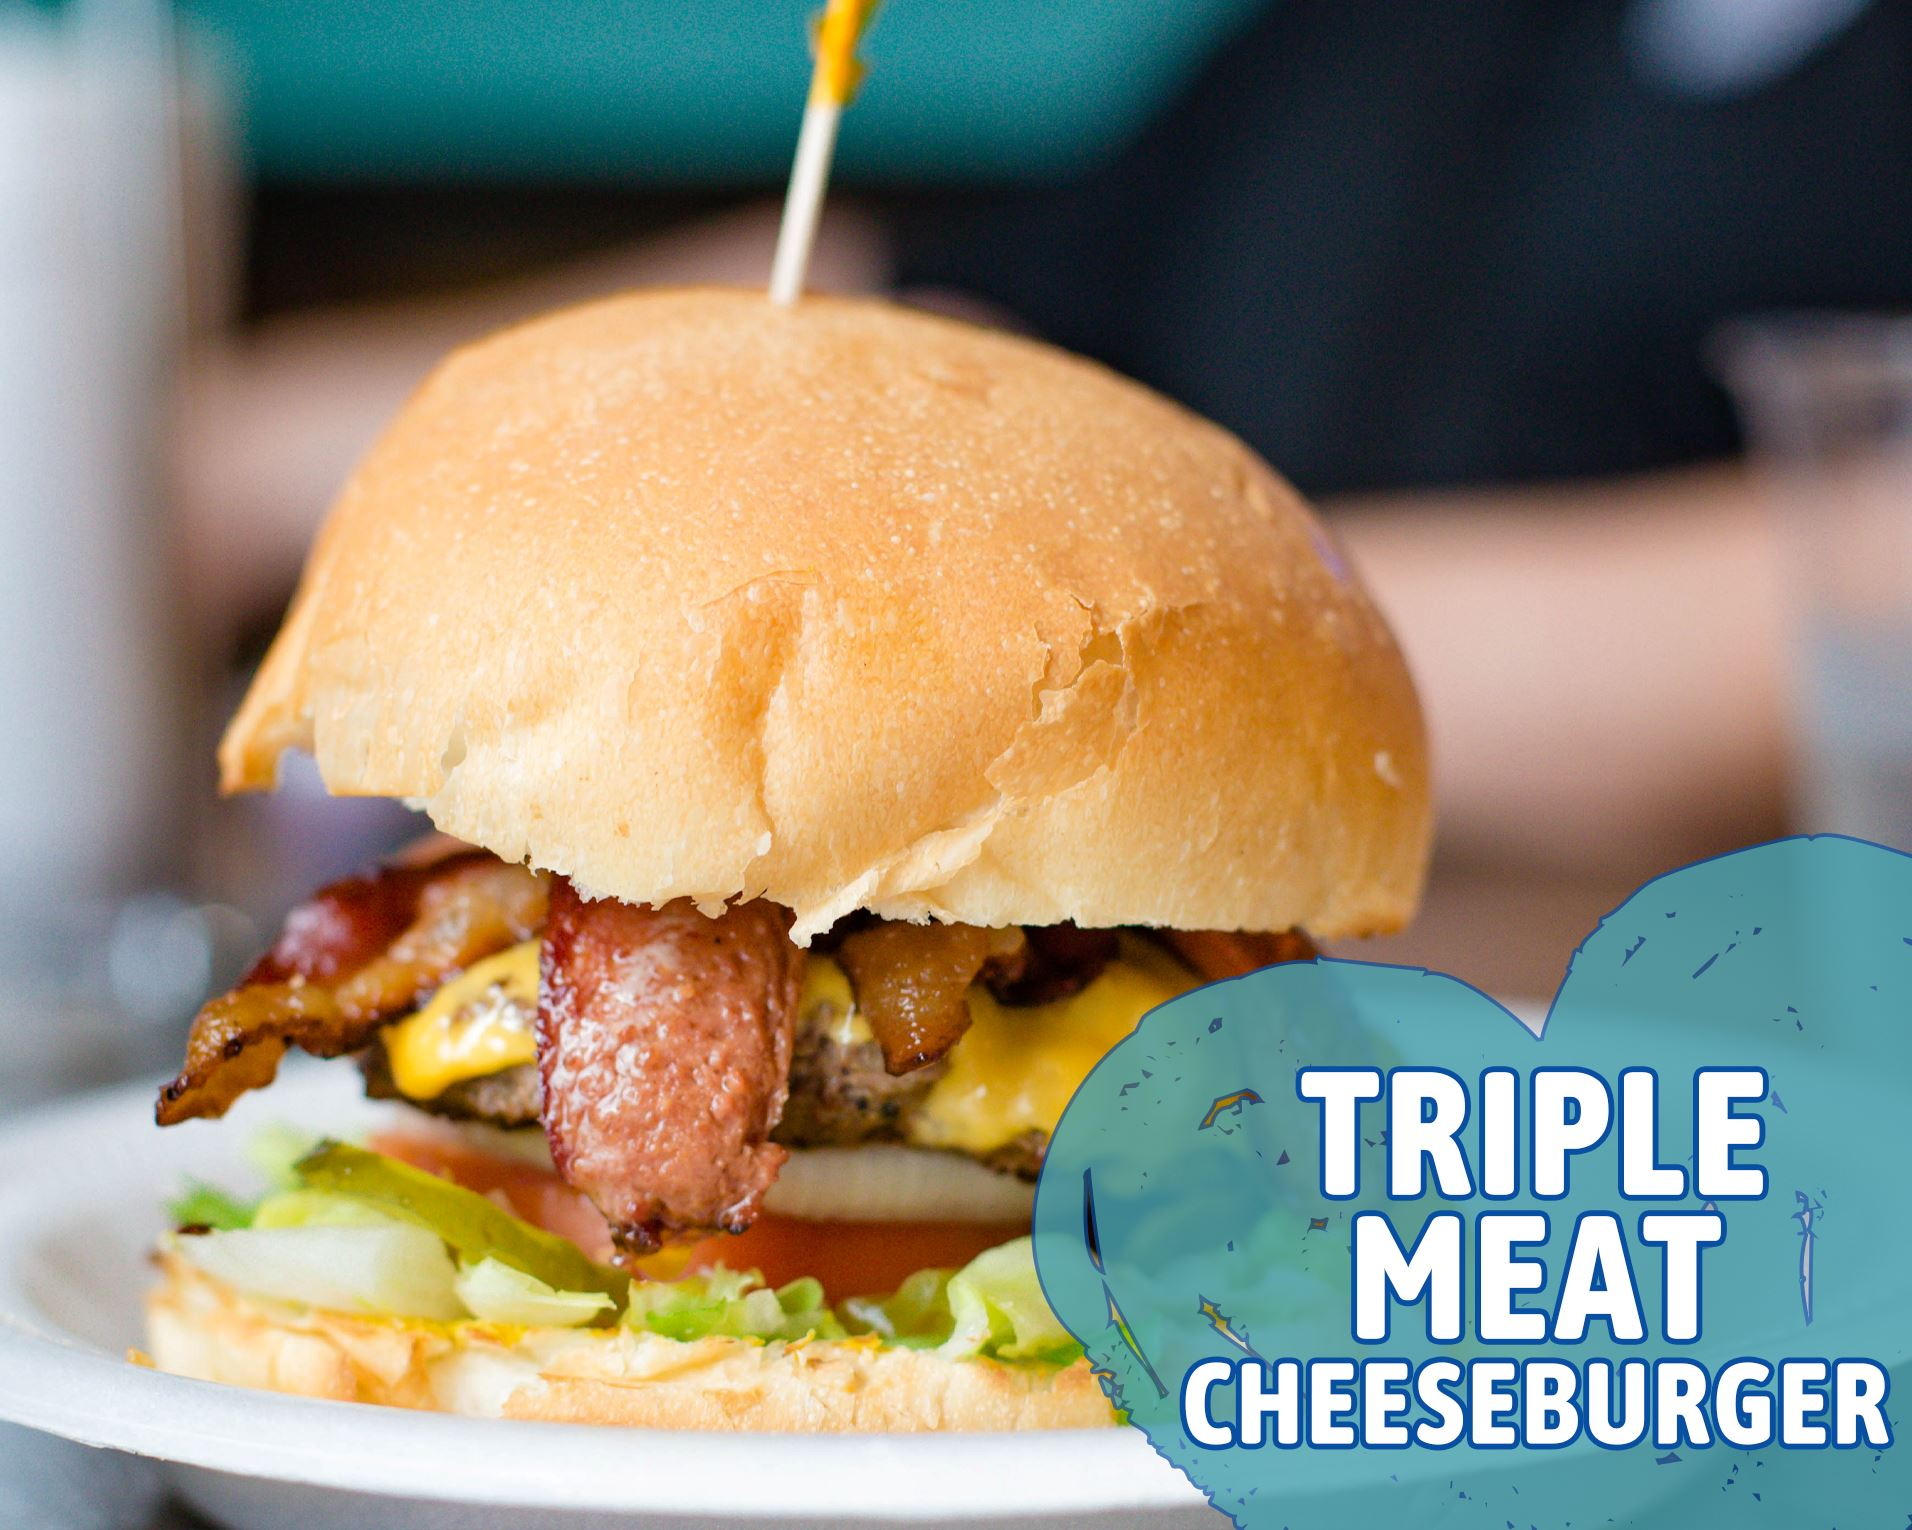 Hubcap Grill - Triple Meat Cheeseburger